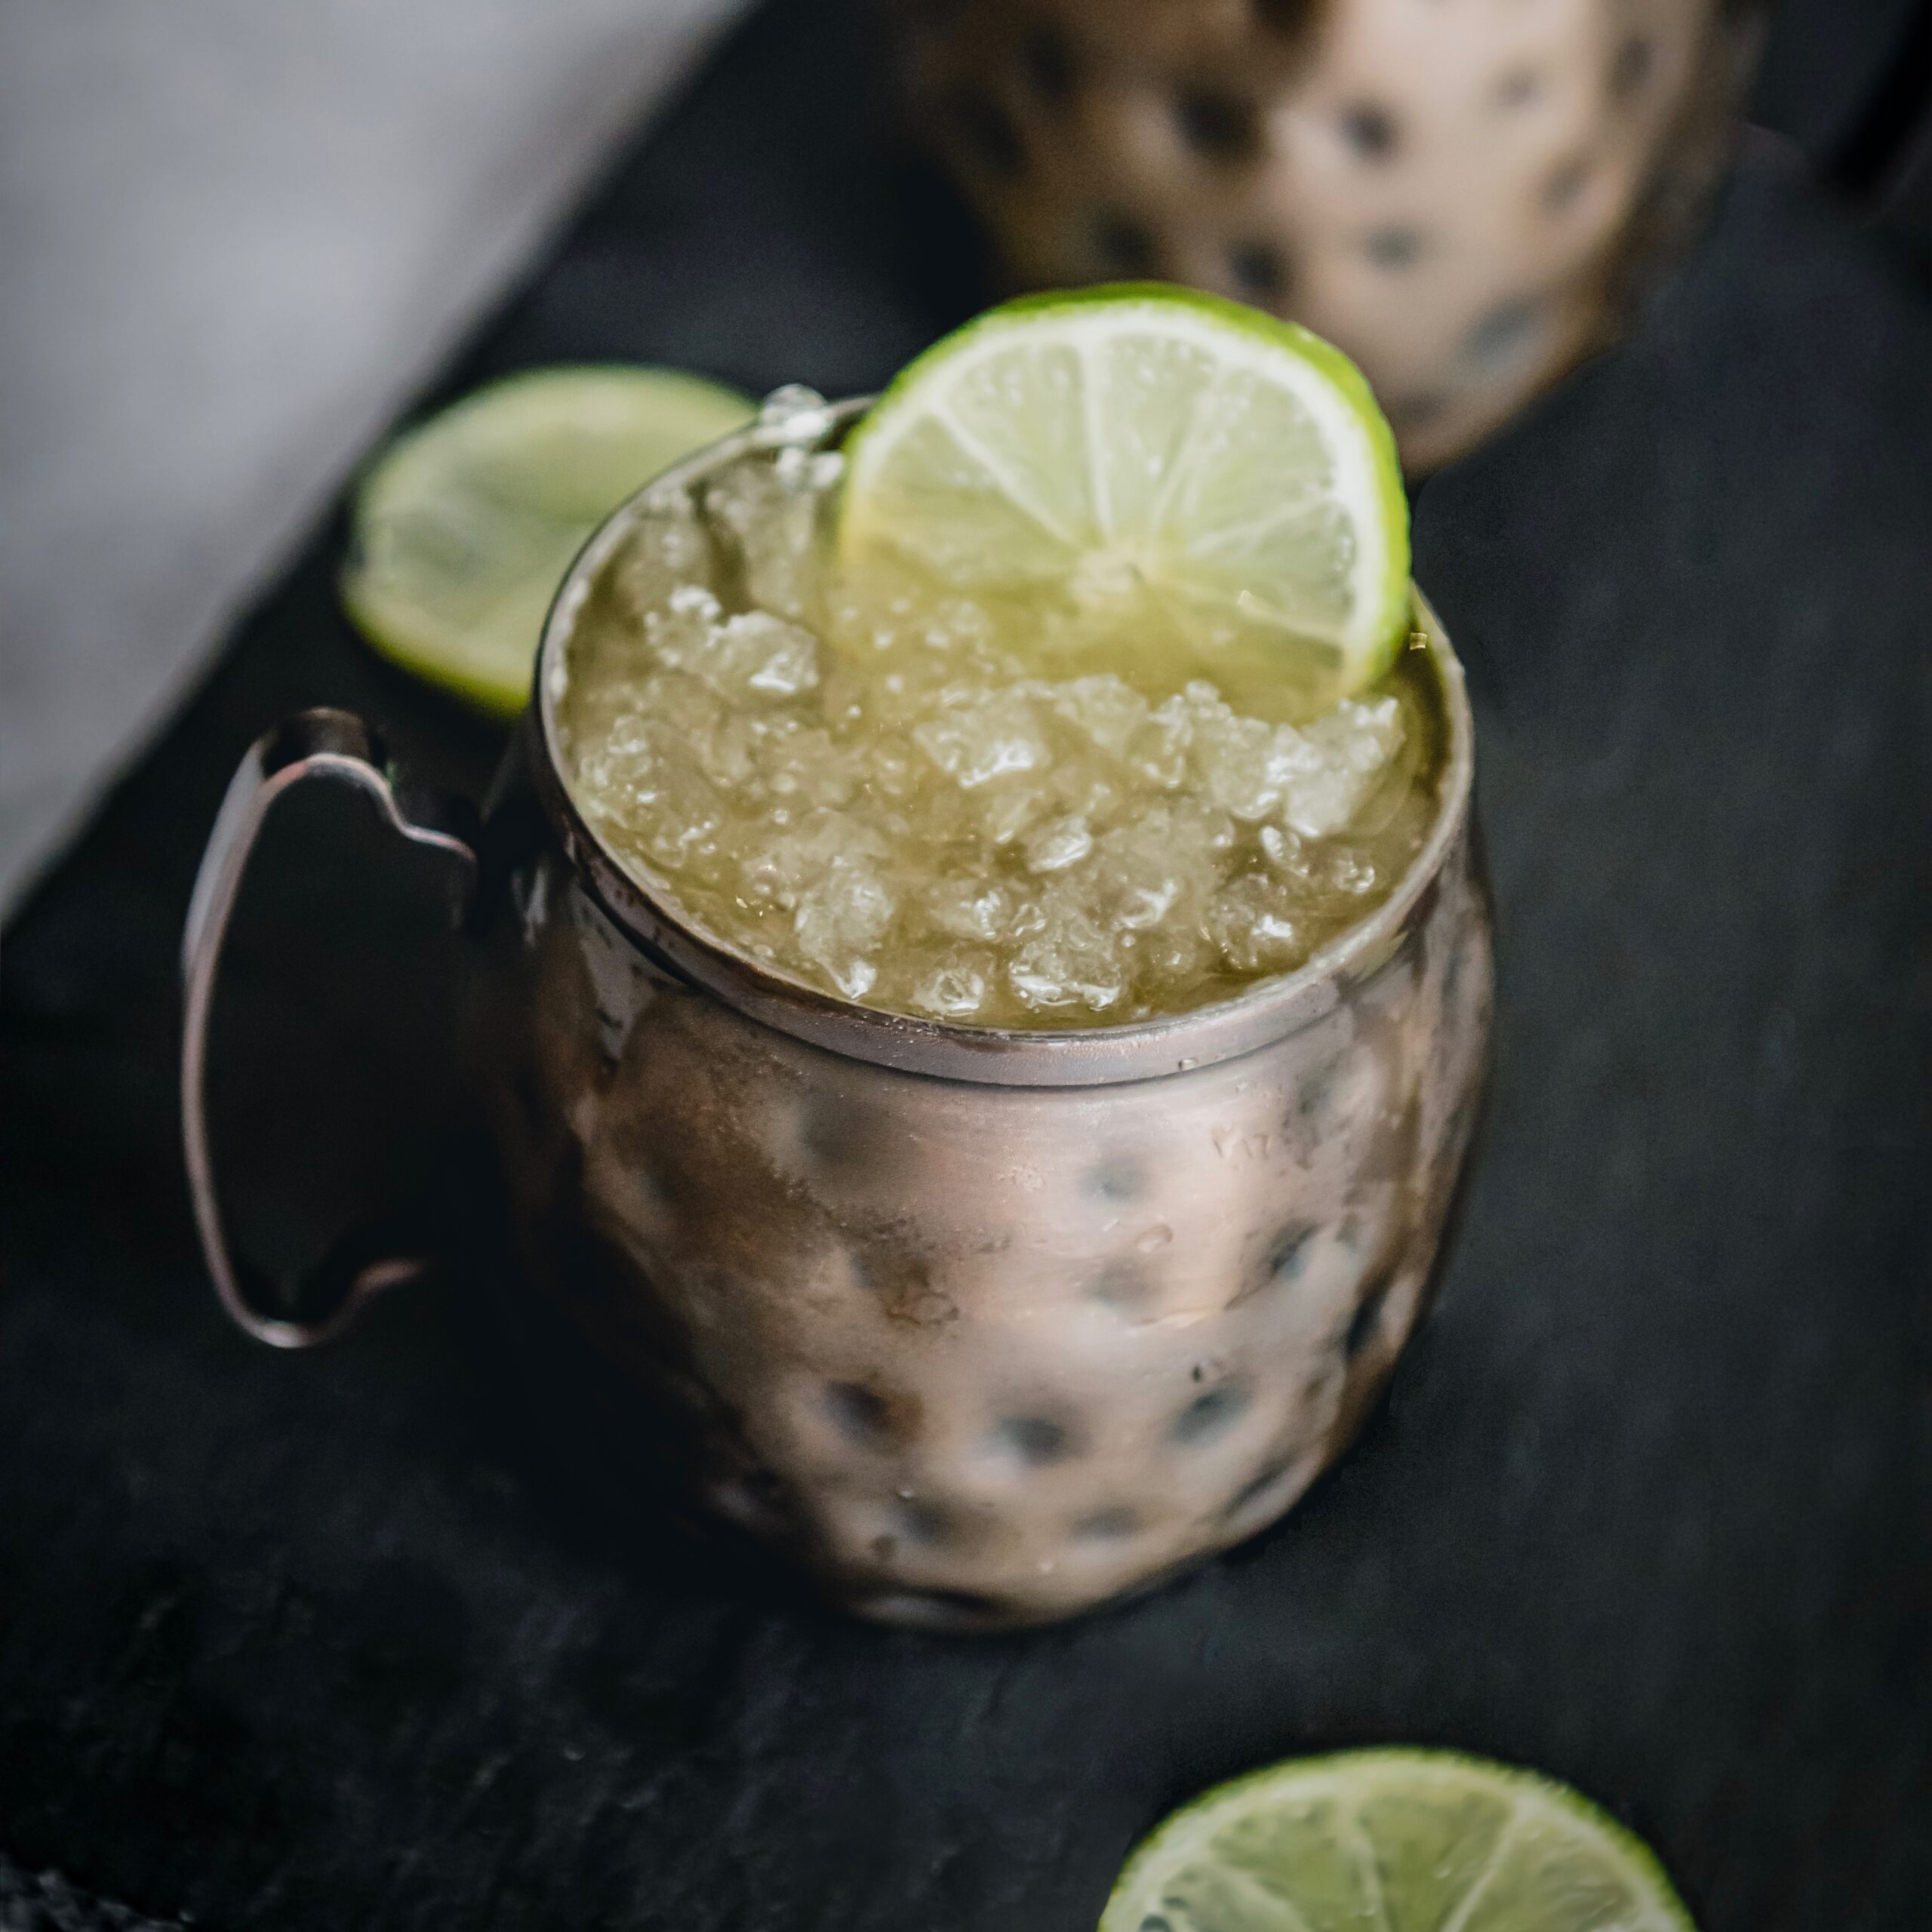 Walk-On's Sports Bistreaux's Kentucky Mule via Brooke Levin at Berk Communications for use by 360 Magazine